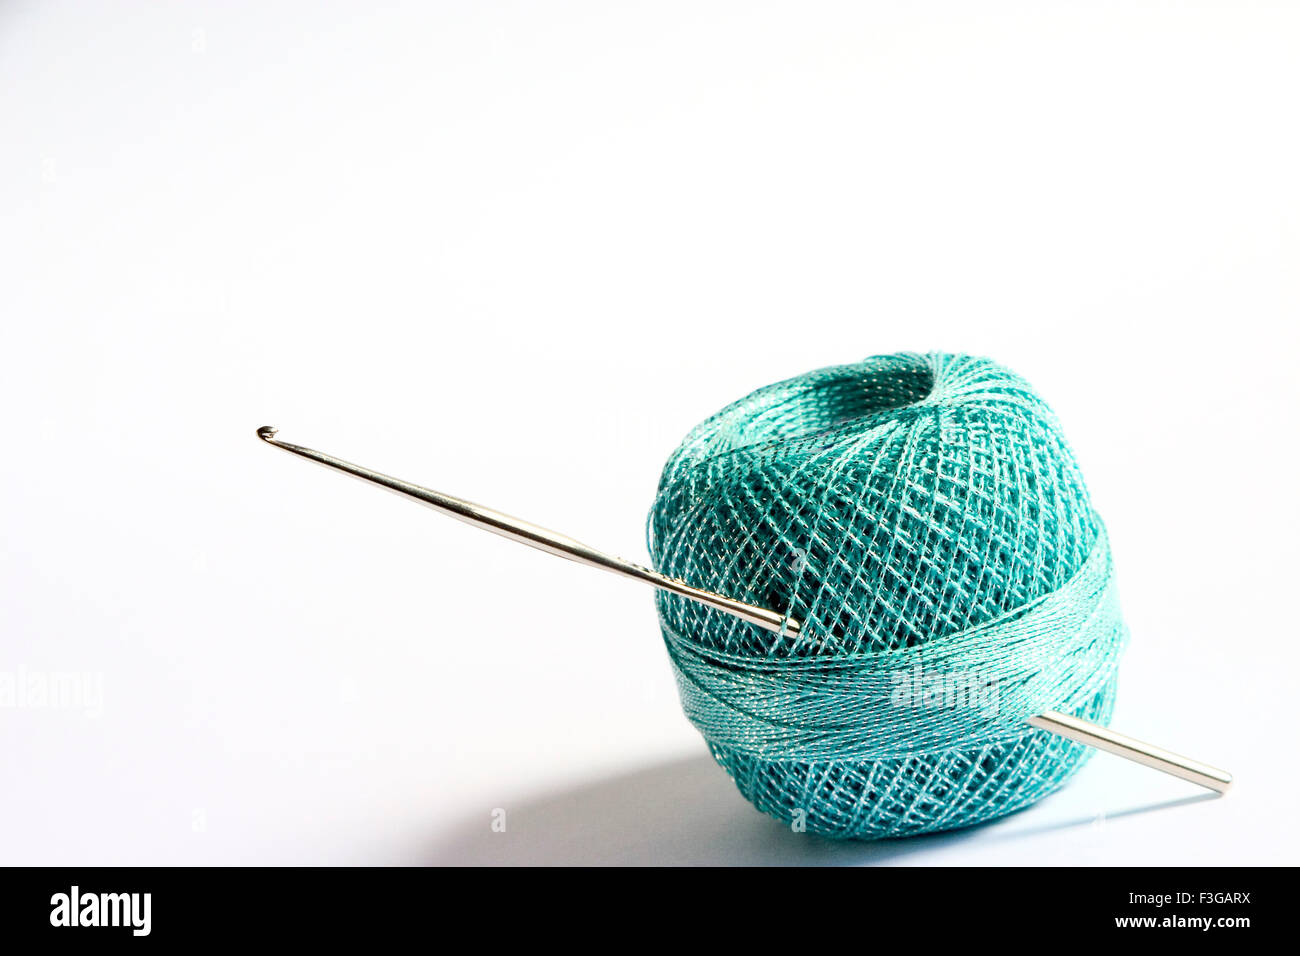 Concept ; alone circle one separate single sole round shape crochet cotton thread with knitting hooked needle - Stock Image